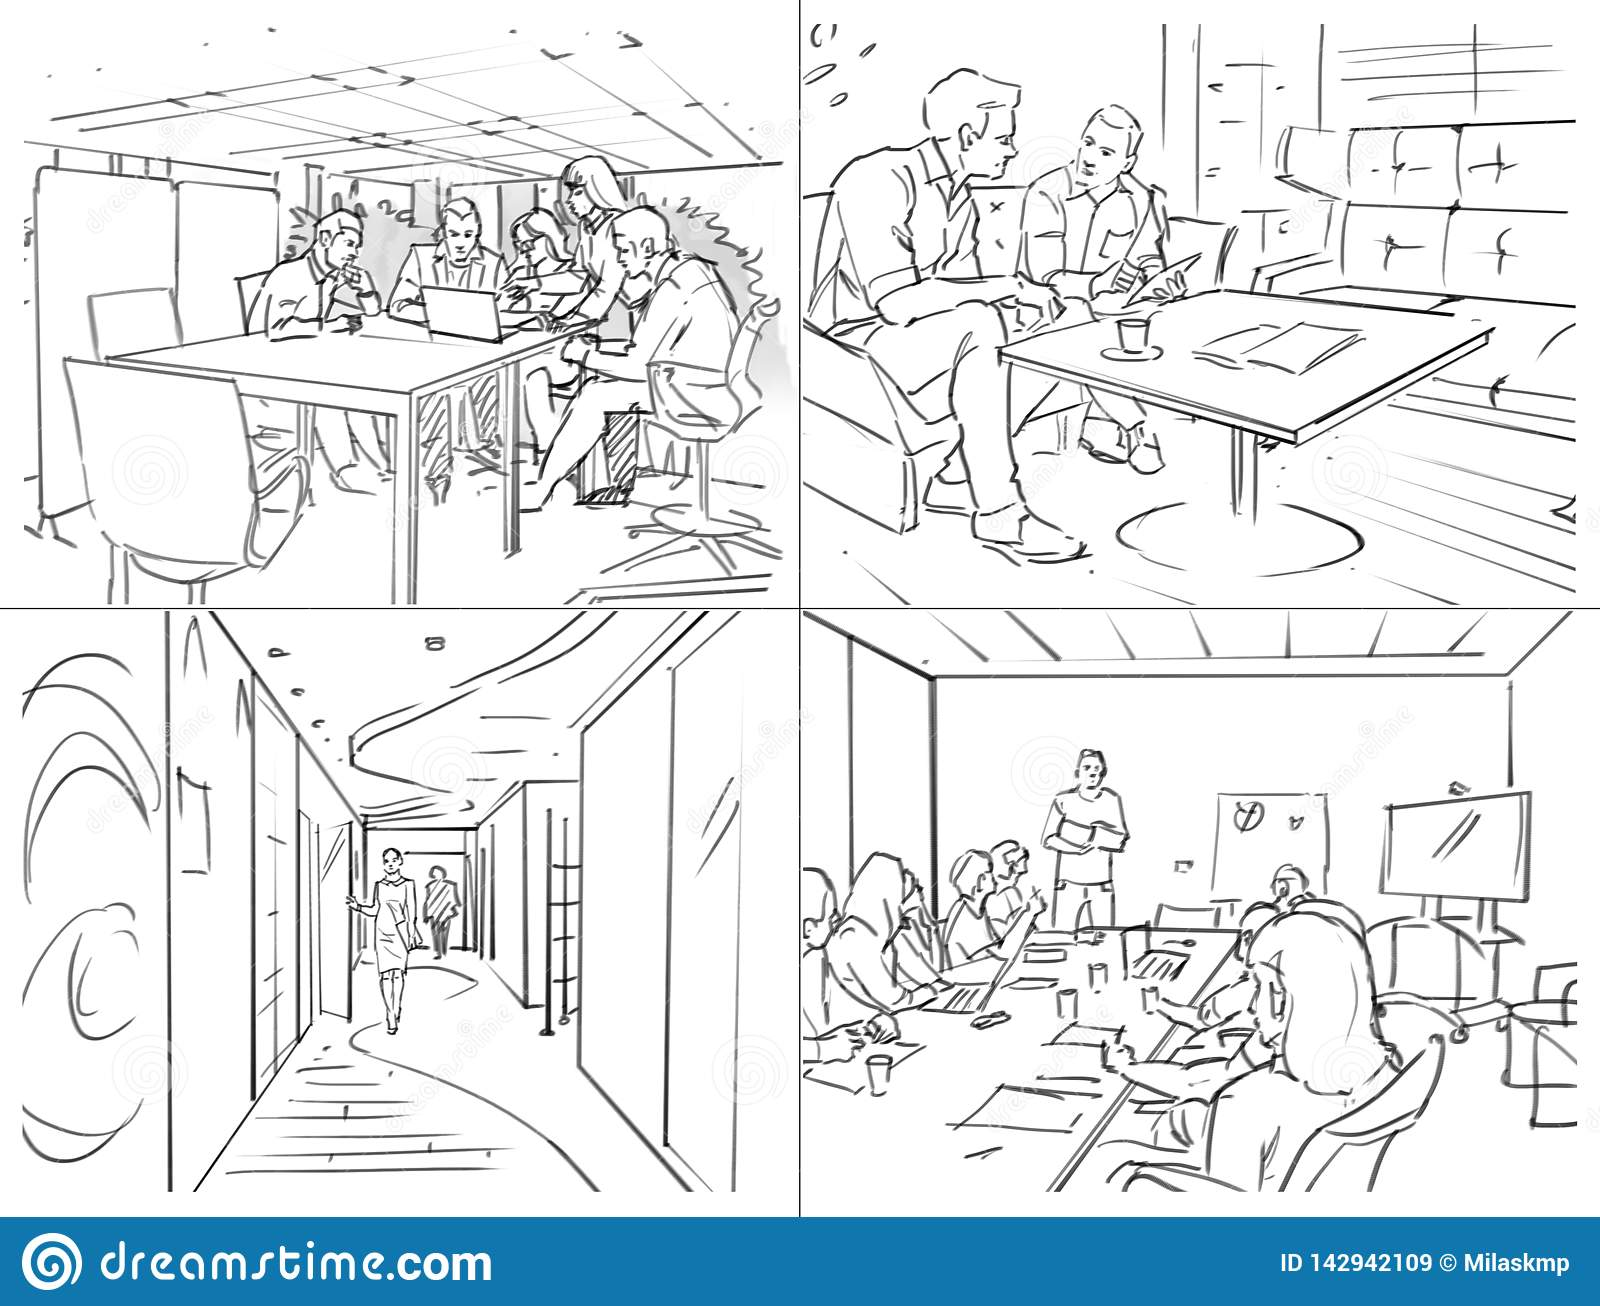 Storyboard with office life